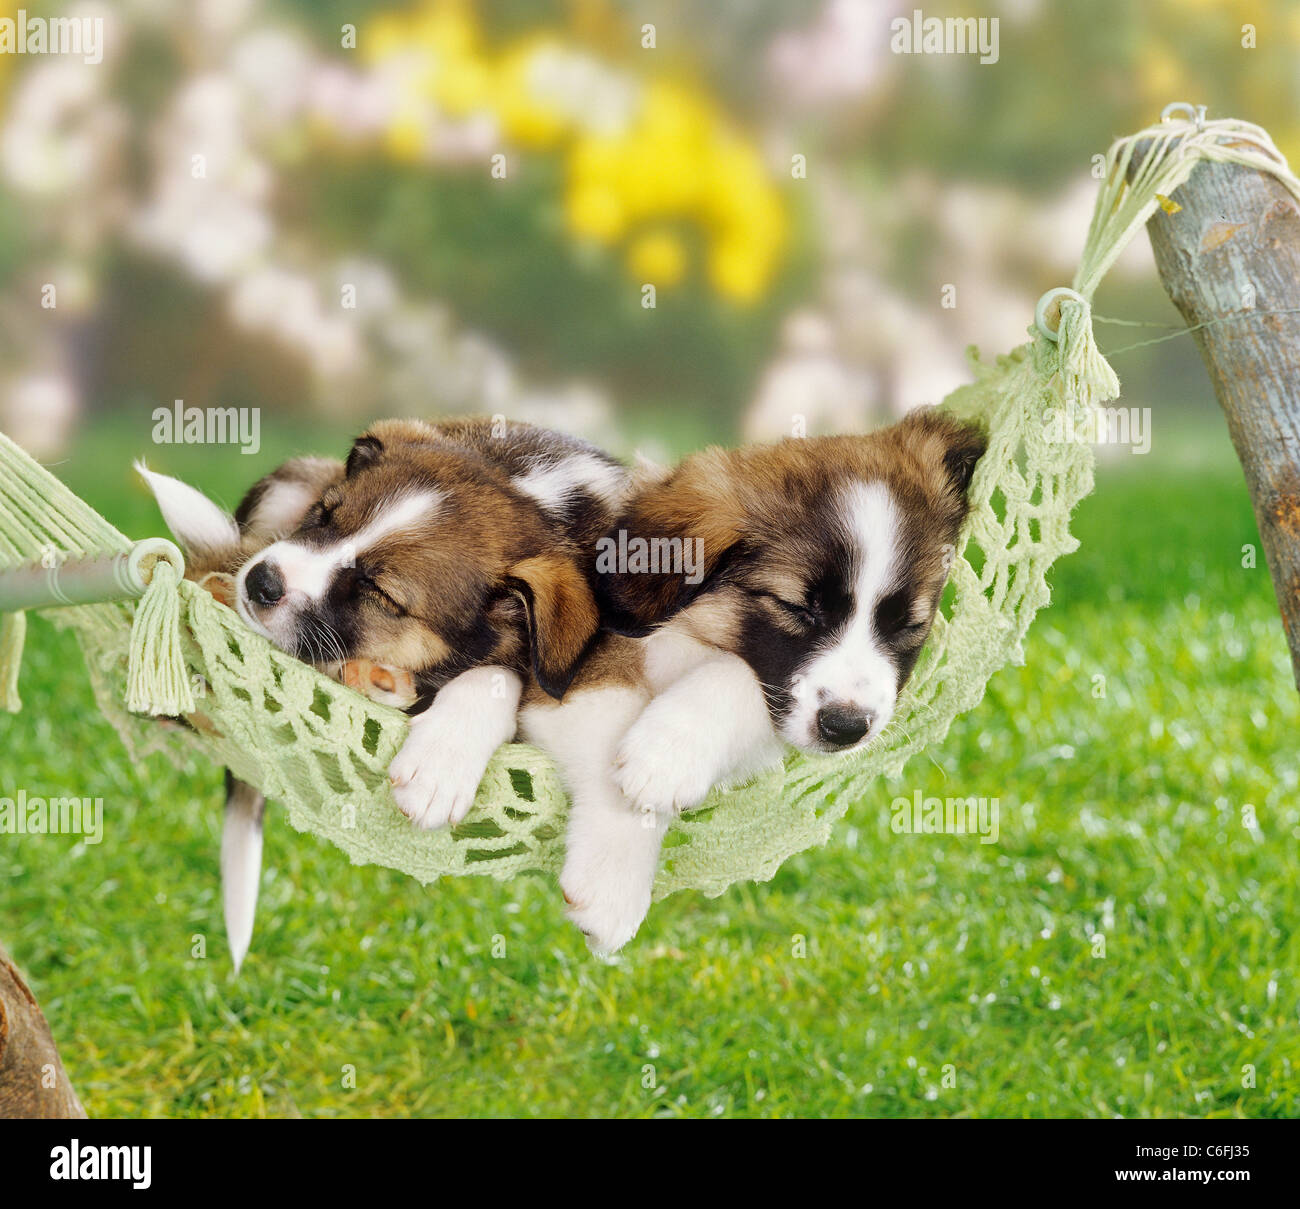 Mixed Breed Dog Four Puppies 5 Weeks Old Sleeping In A